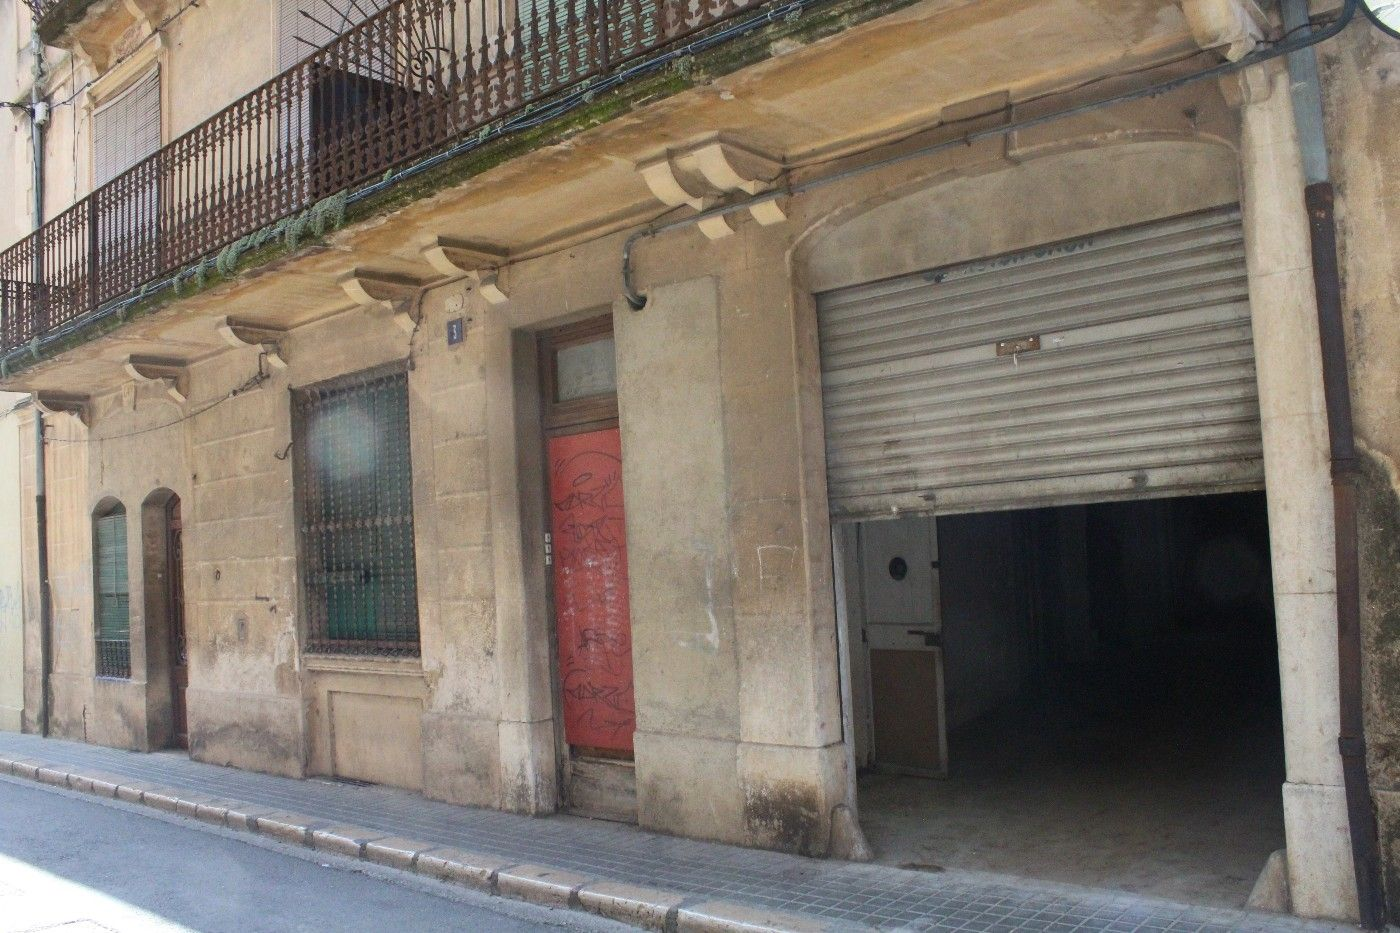 Location Entrepôt à Carrer sant vicenç, 3. Local para acondicionar